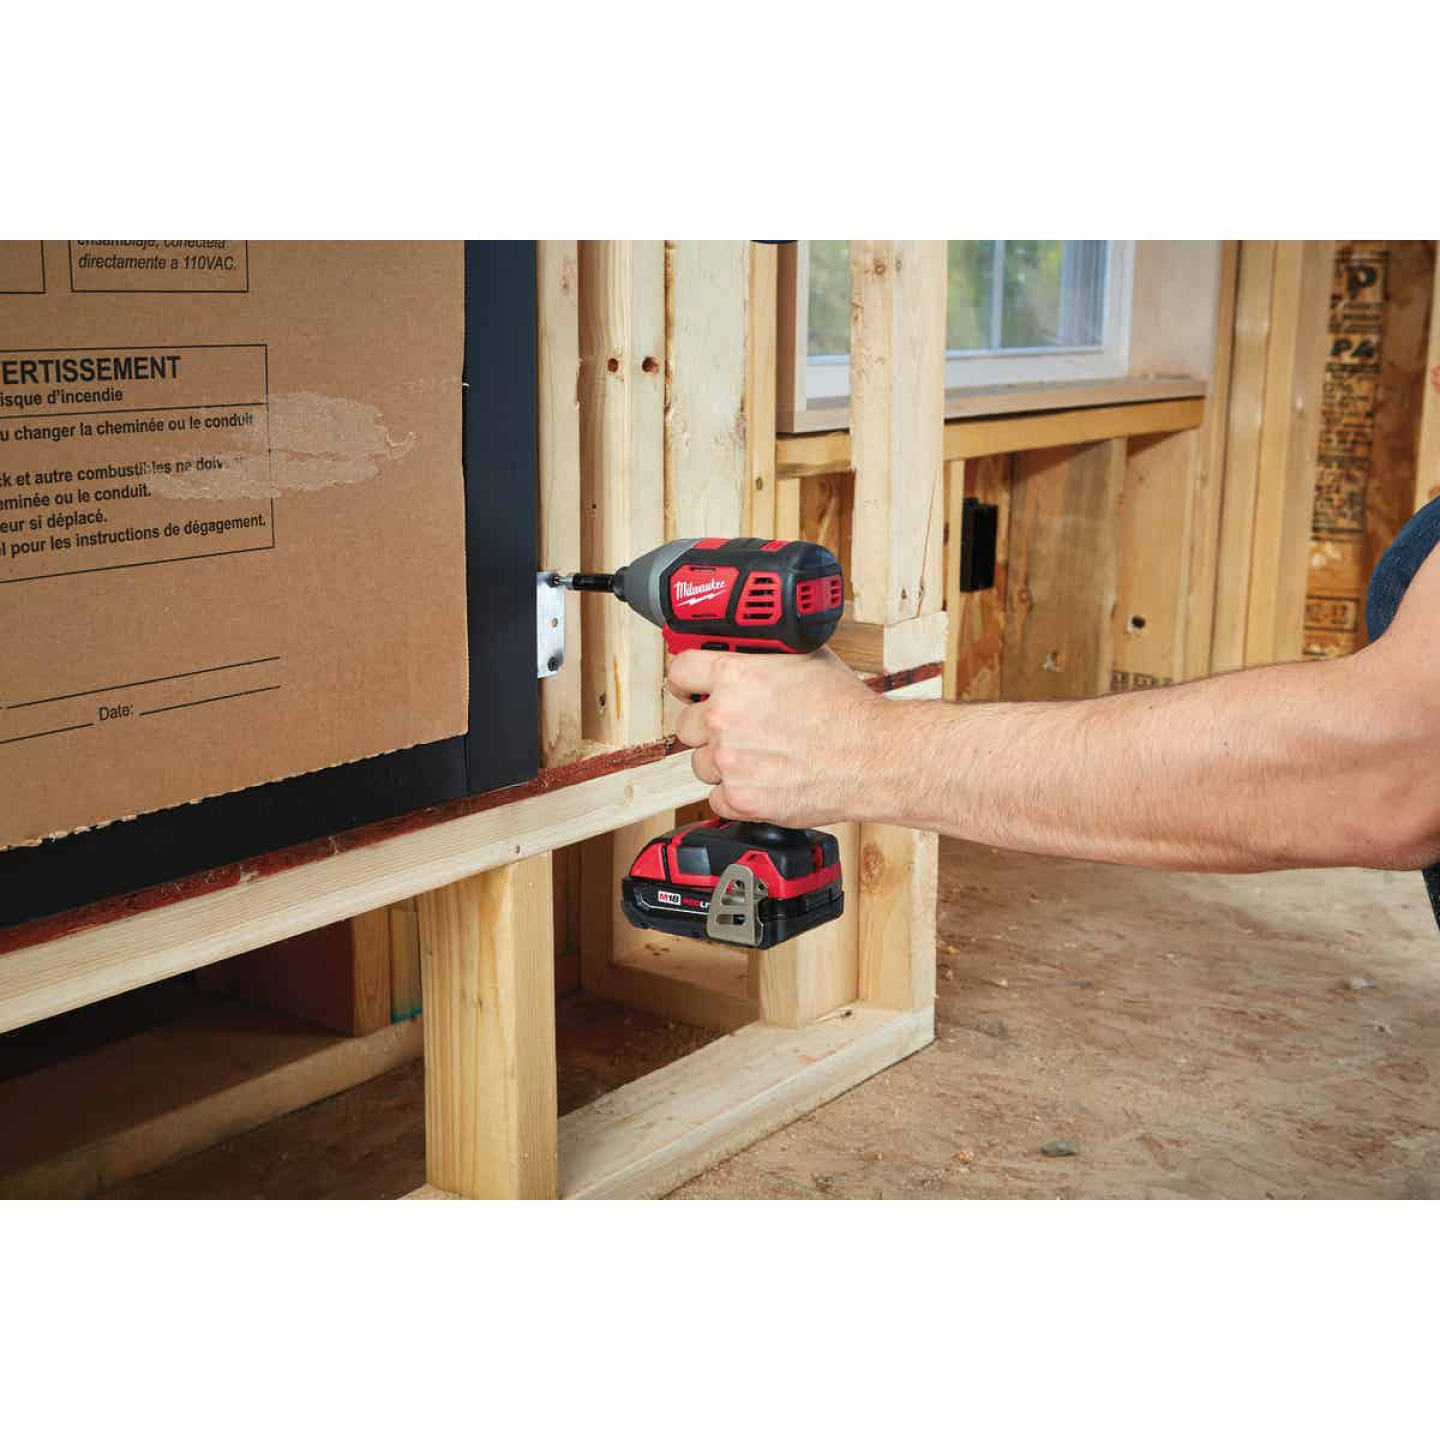 Milwaukee M18 18 Volt Lithium-Ion 2-Speed 1/4 In. Hex Cordless Impact Driver Kit (with 2 Compact Batteries) Image 2